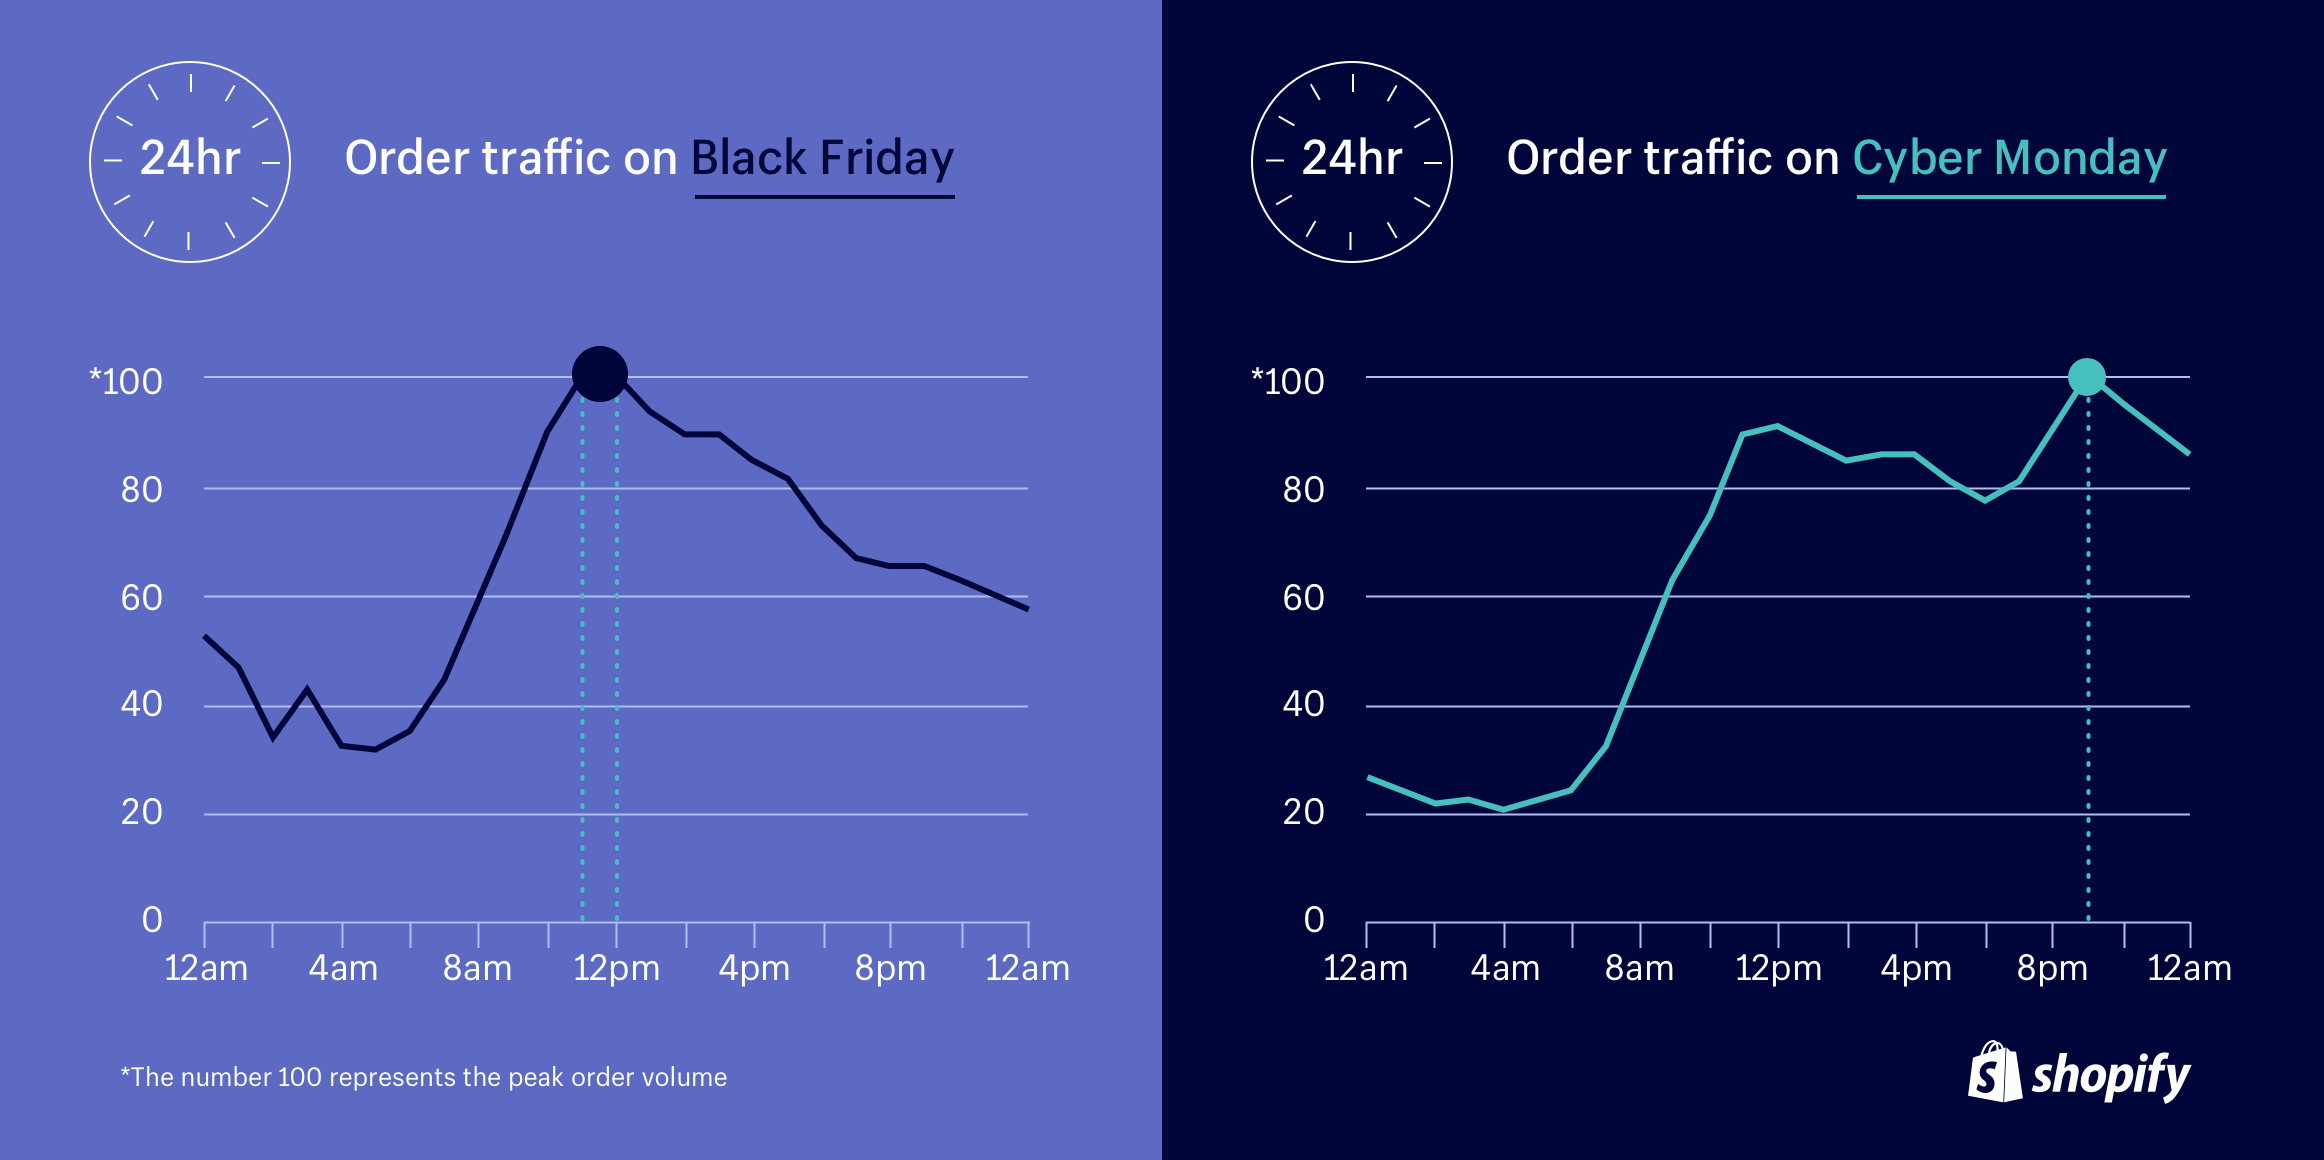 Peak shopping hours during Black Friday Cyber Monday.